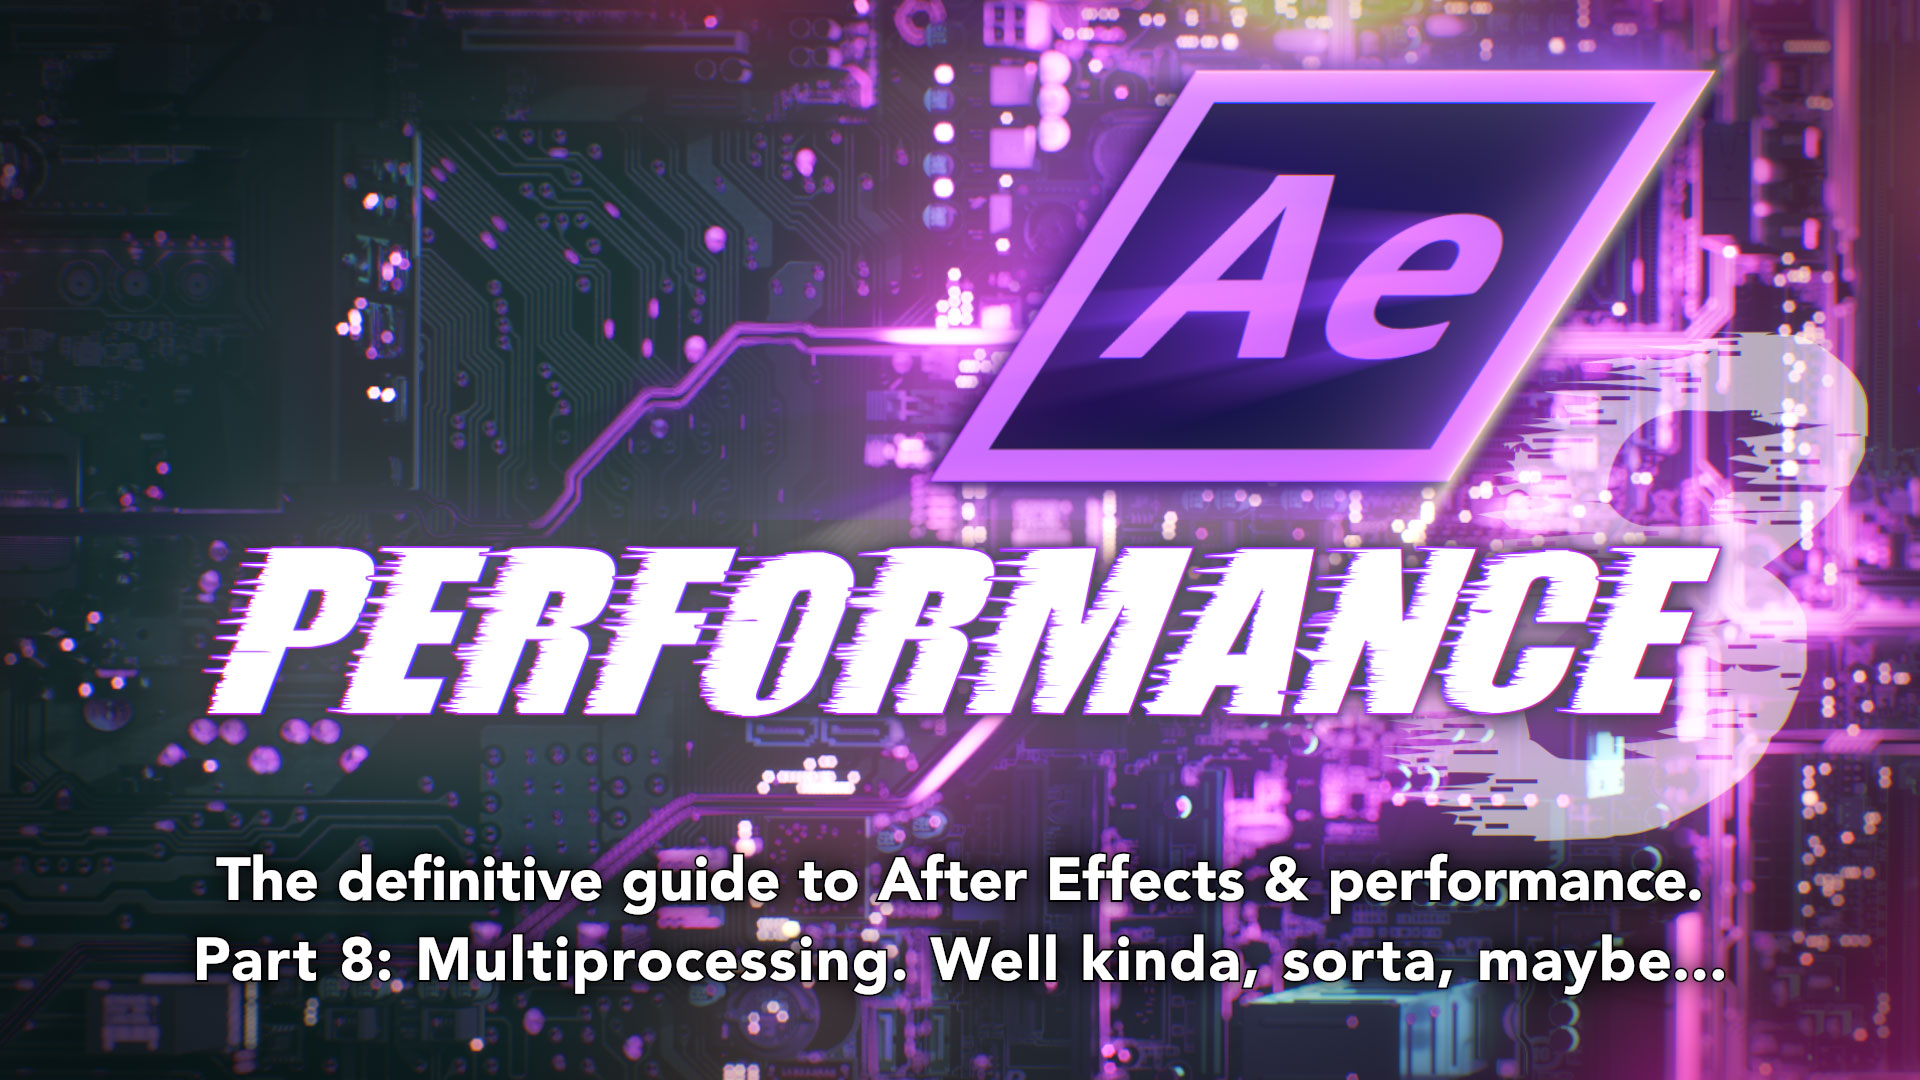 After Effects & Performance. Part 8: Multiprocessing (kinda sorta) 2